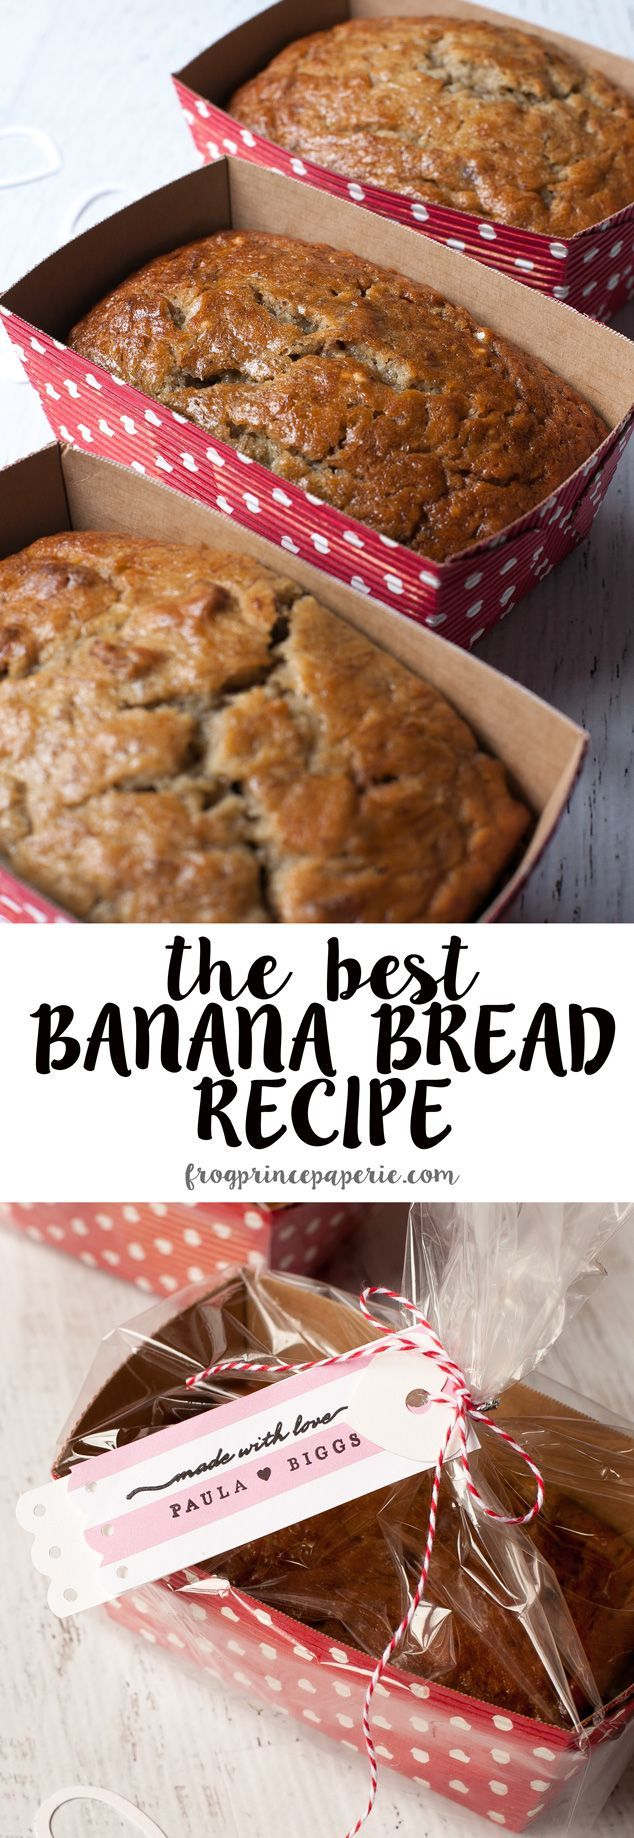 The best banana bread recipe ever--great for gift giving!